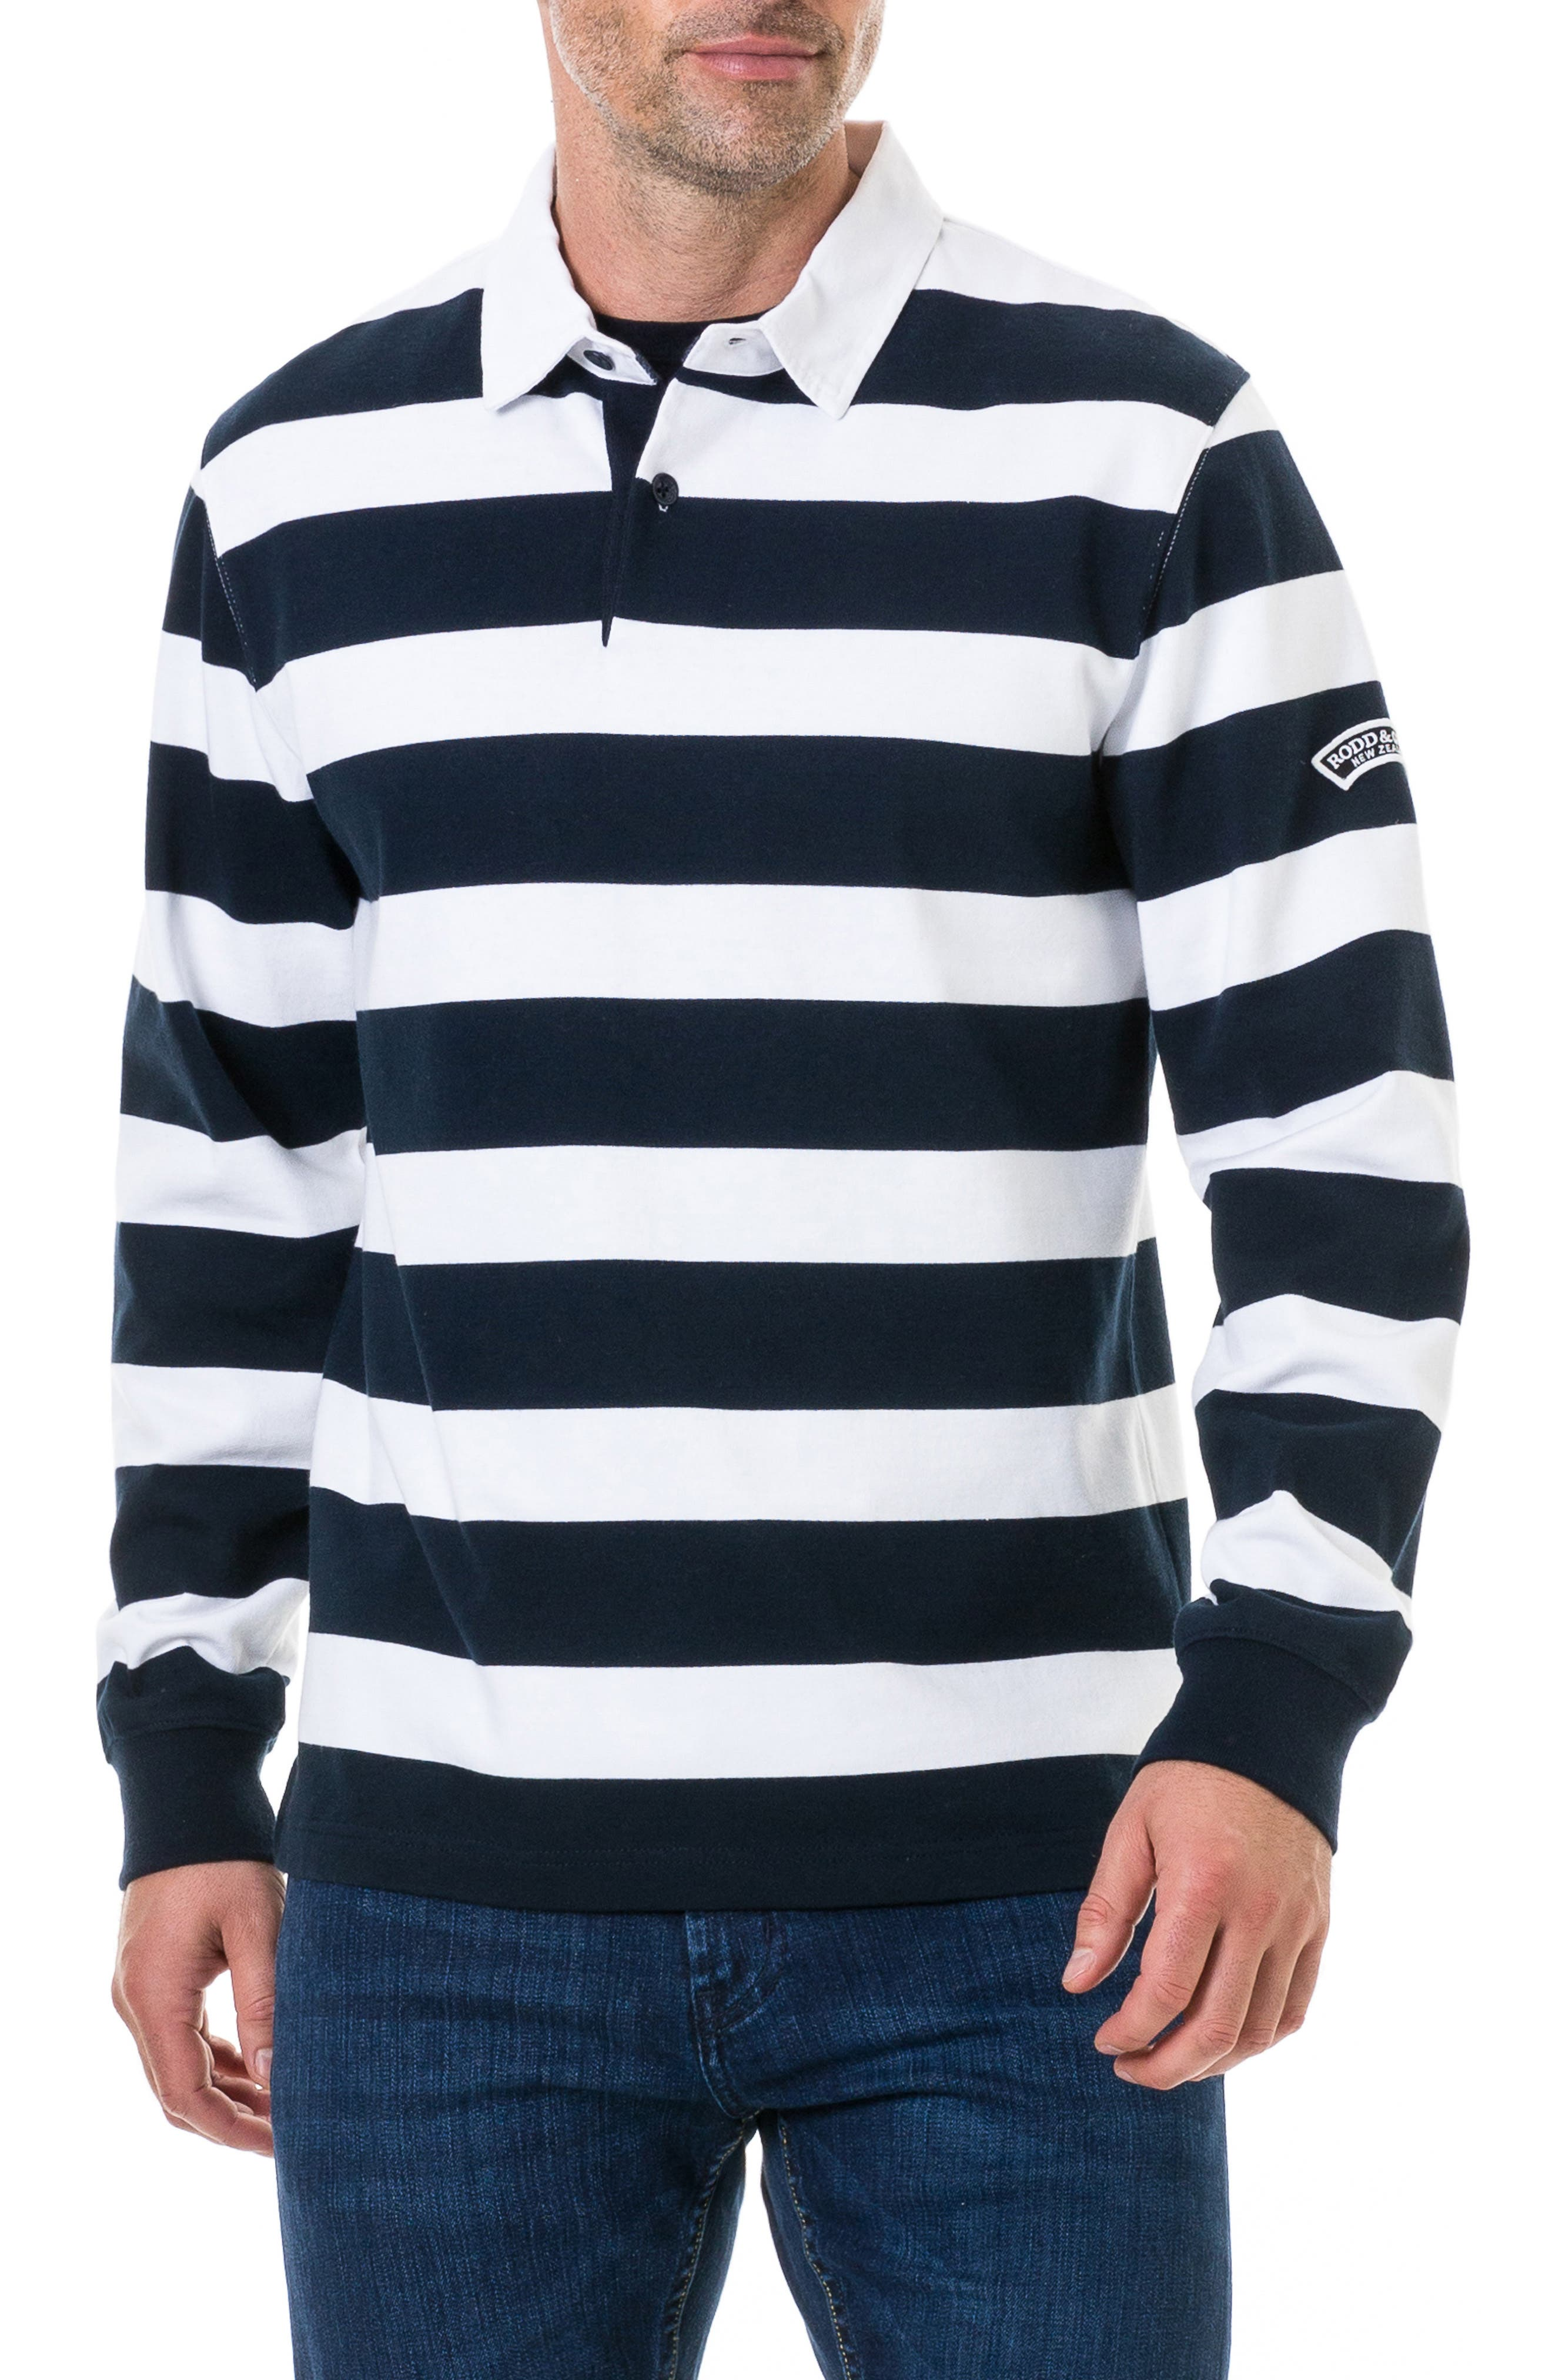 e7270f79876 rugby shirt | Nordstrom